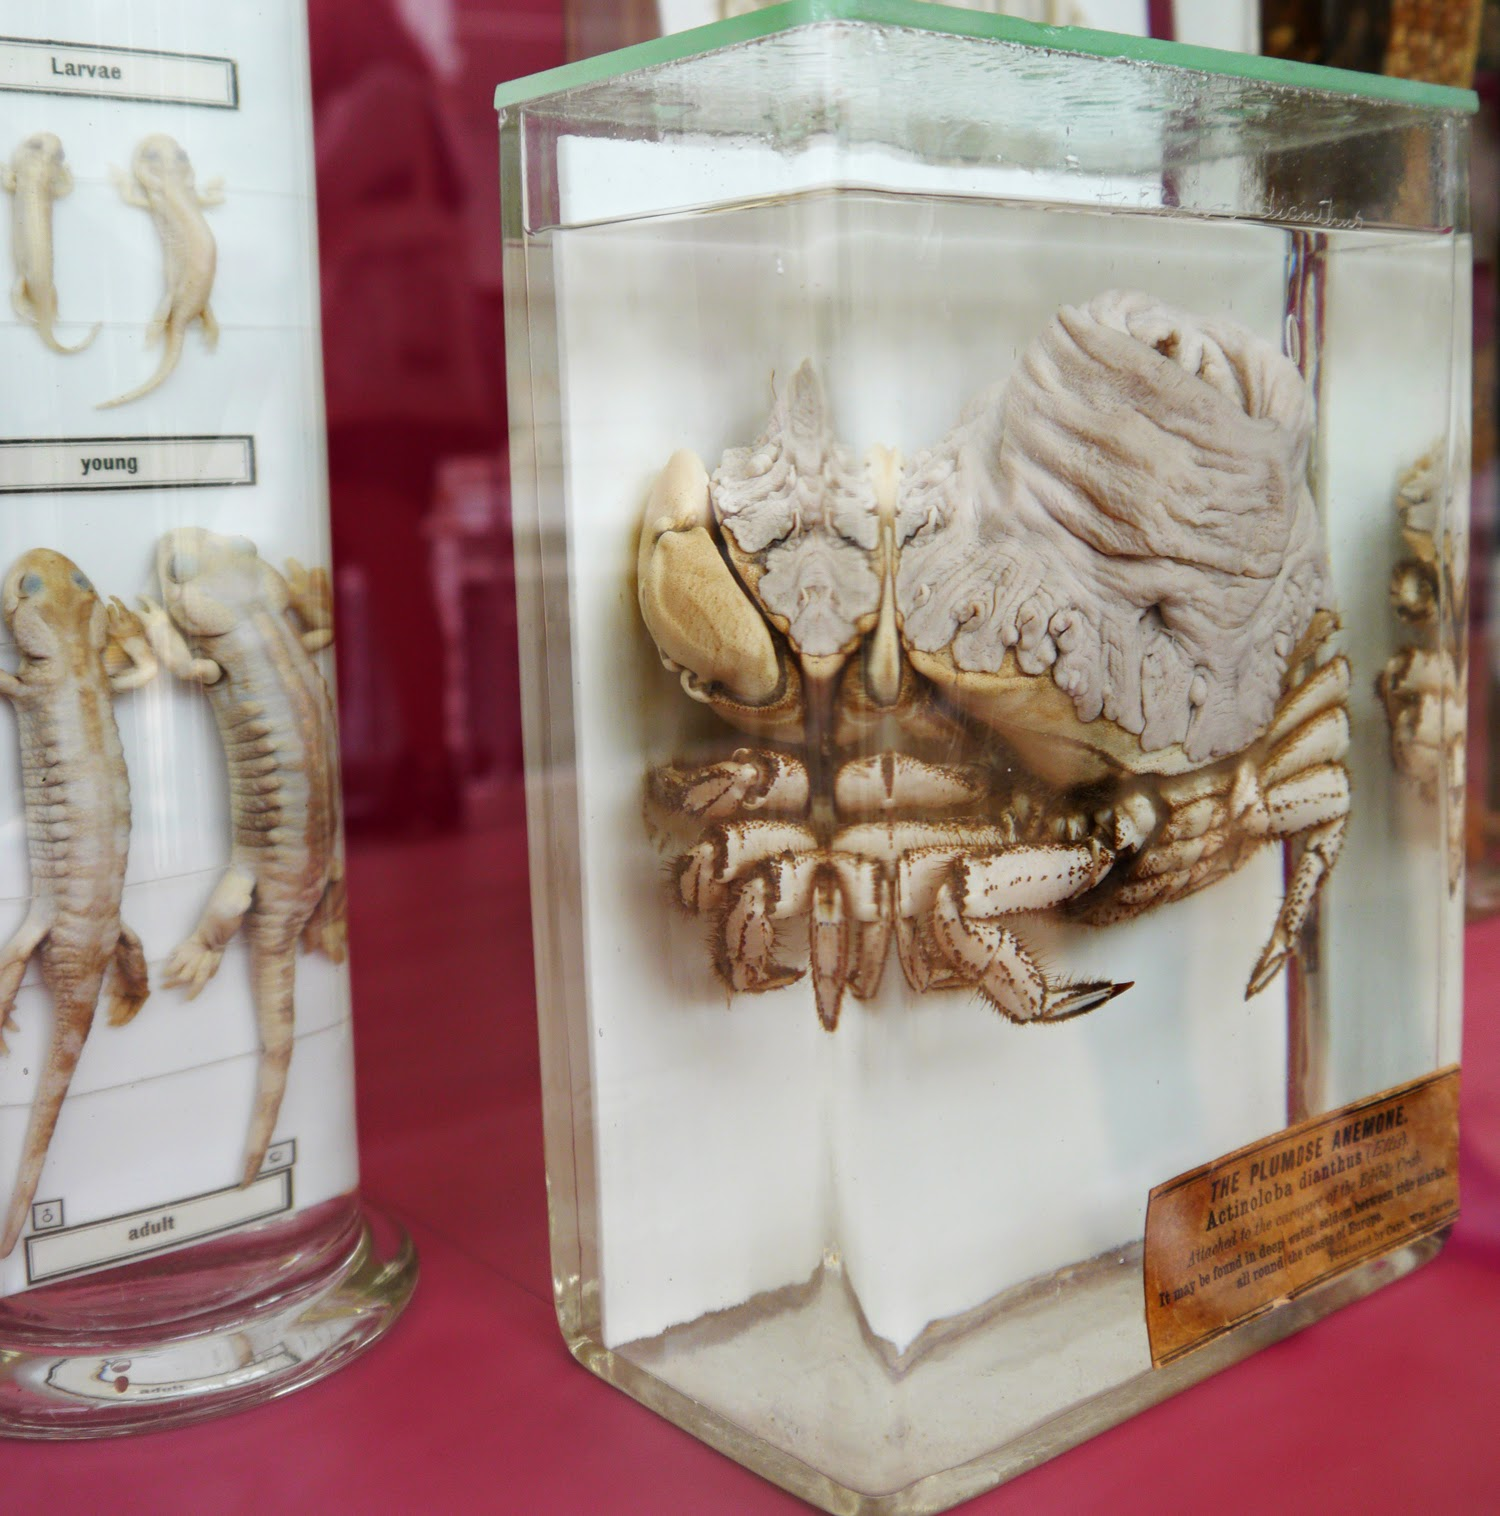 national museum, scotland, animal land, crab, lobster, crustacean, taxidermy, biology, natural history, Edinburgh, weird, fossil, bones